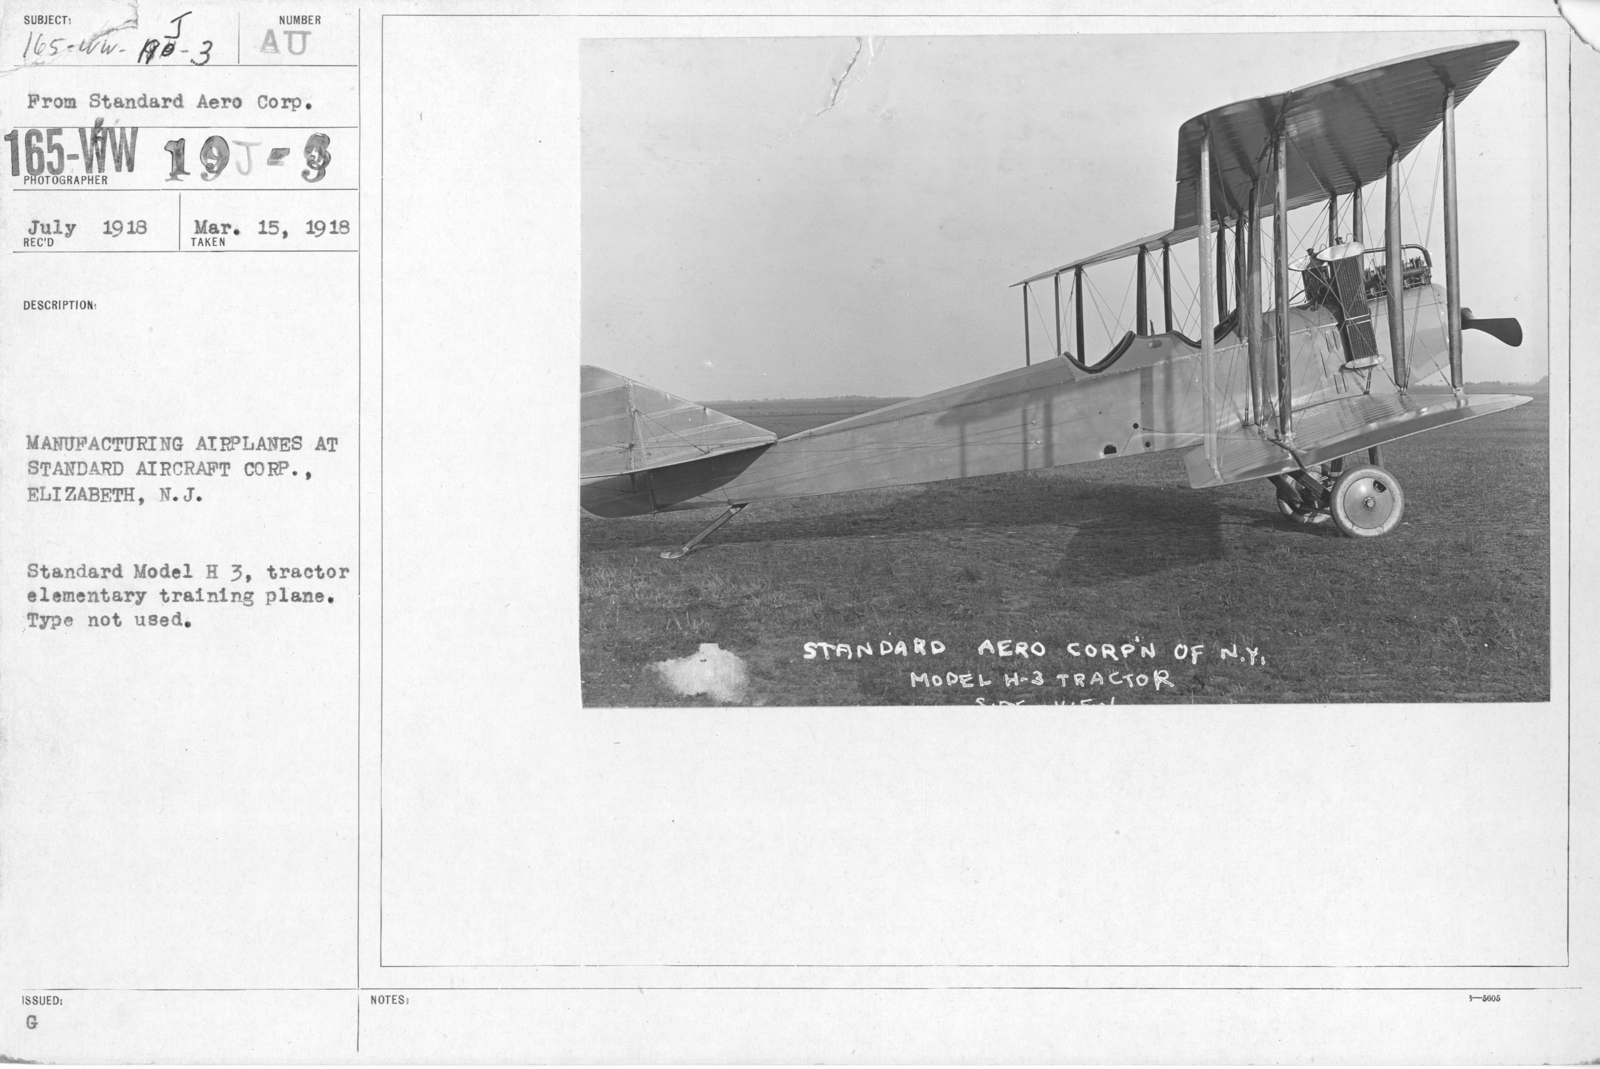 Airplanes - Types - Manufacturing airplanes at Standard Aircraft Corp. Elizabeth, N.J. Standard Model H.3, tractor elementary training plane, type not used